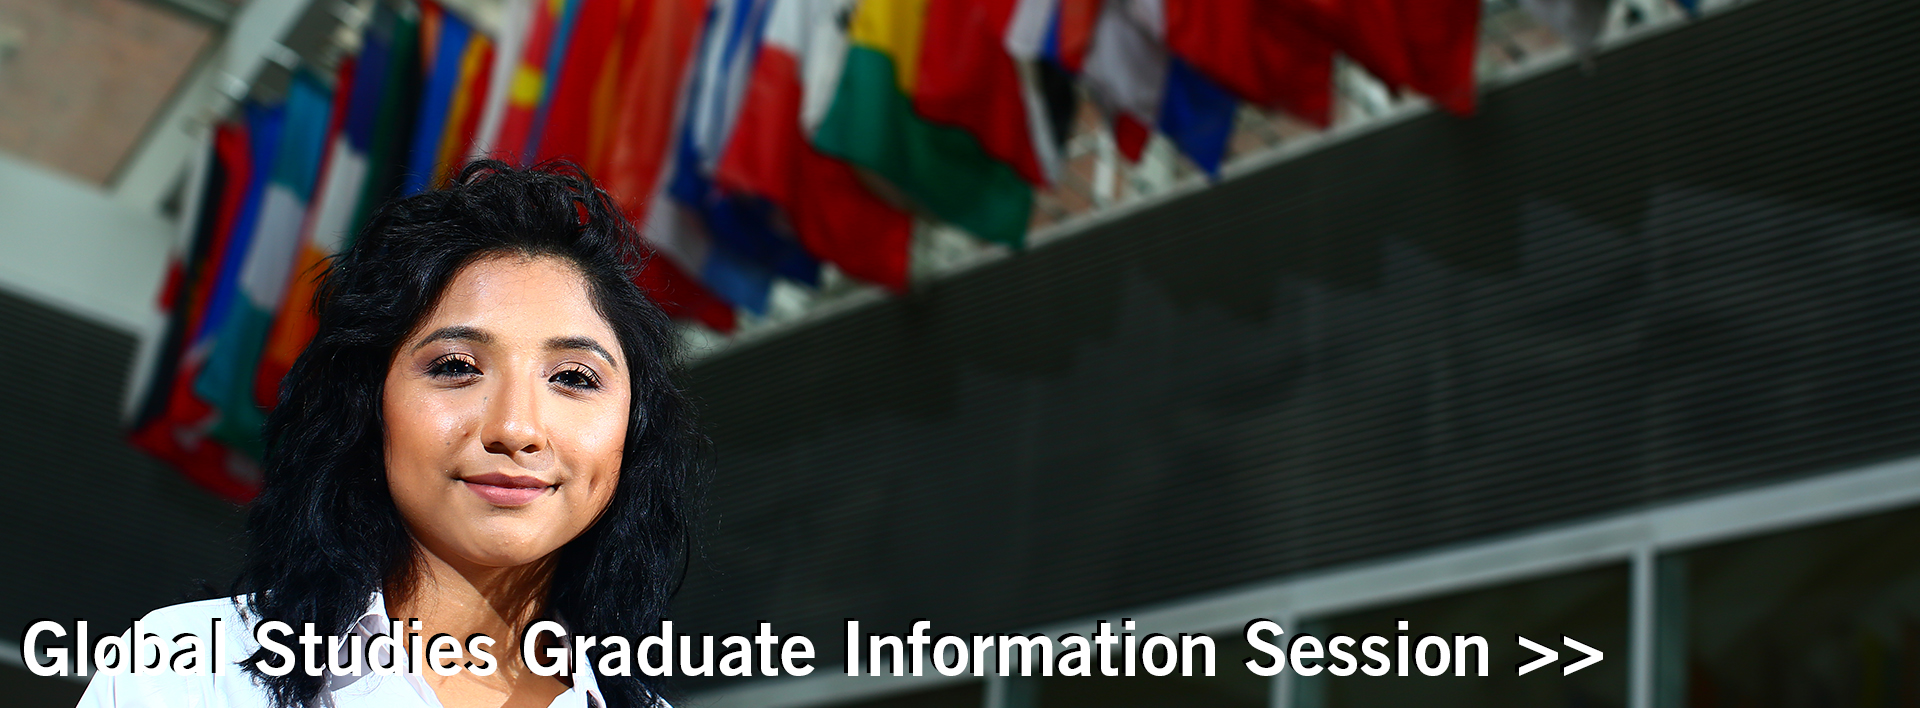 Myriam Sanataria, a Political Science and Latin American and Latino Studies double major, used for Global Studies Graduate Information Session banner